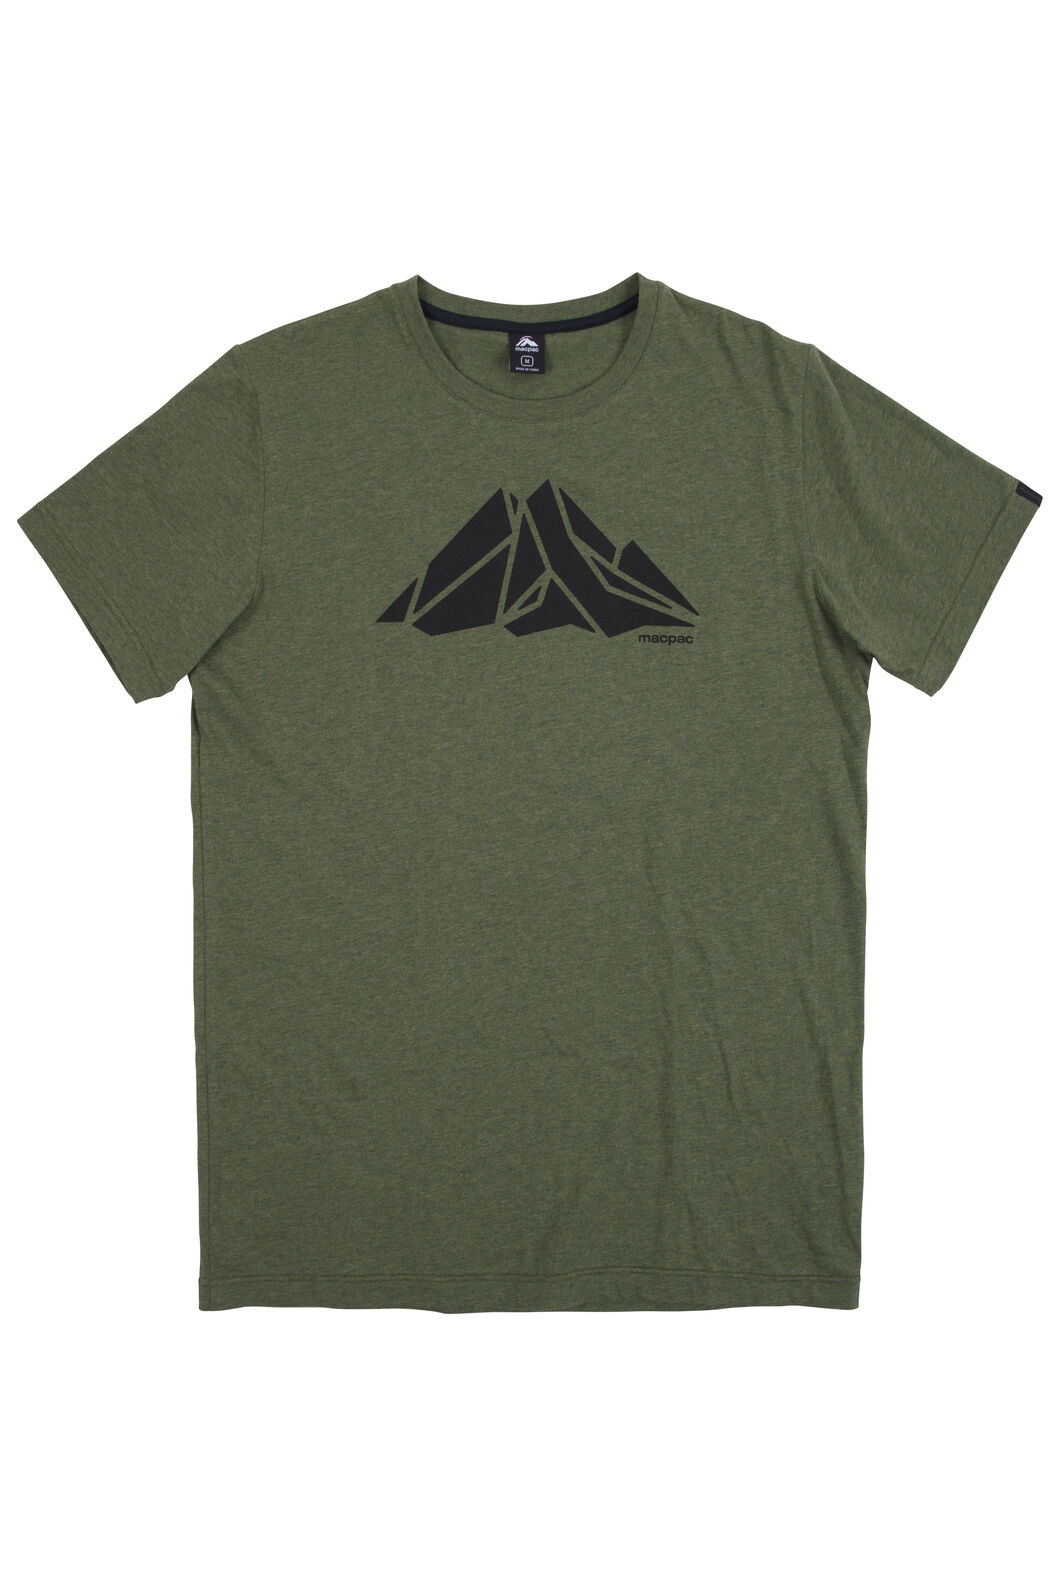 4114d0576 Macpac Screen Print Organic Cotton Tee - Men's, Rifle Melange, ...